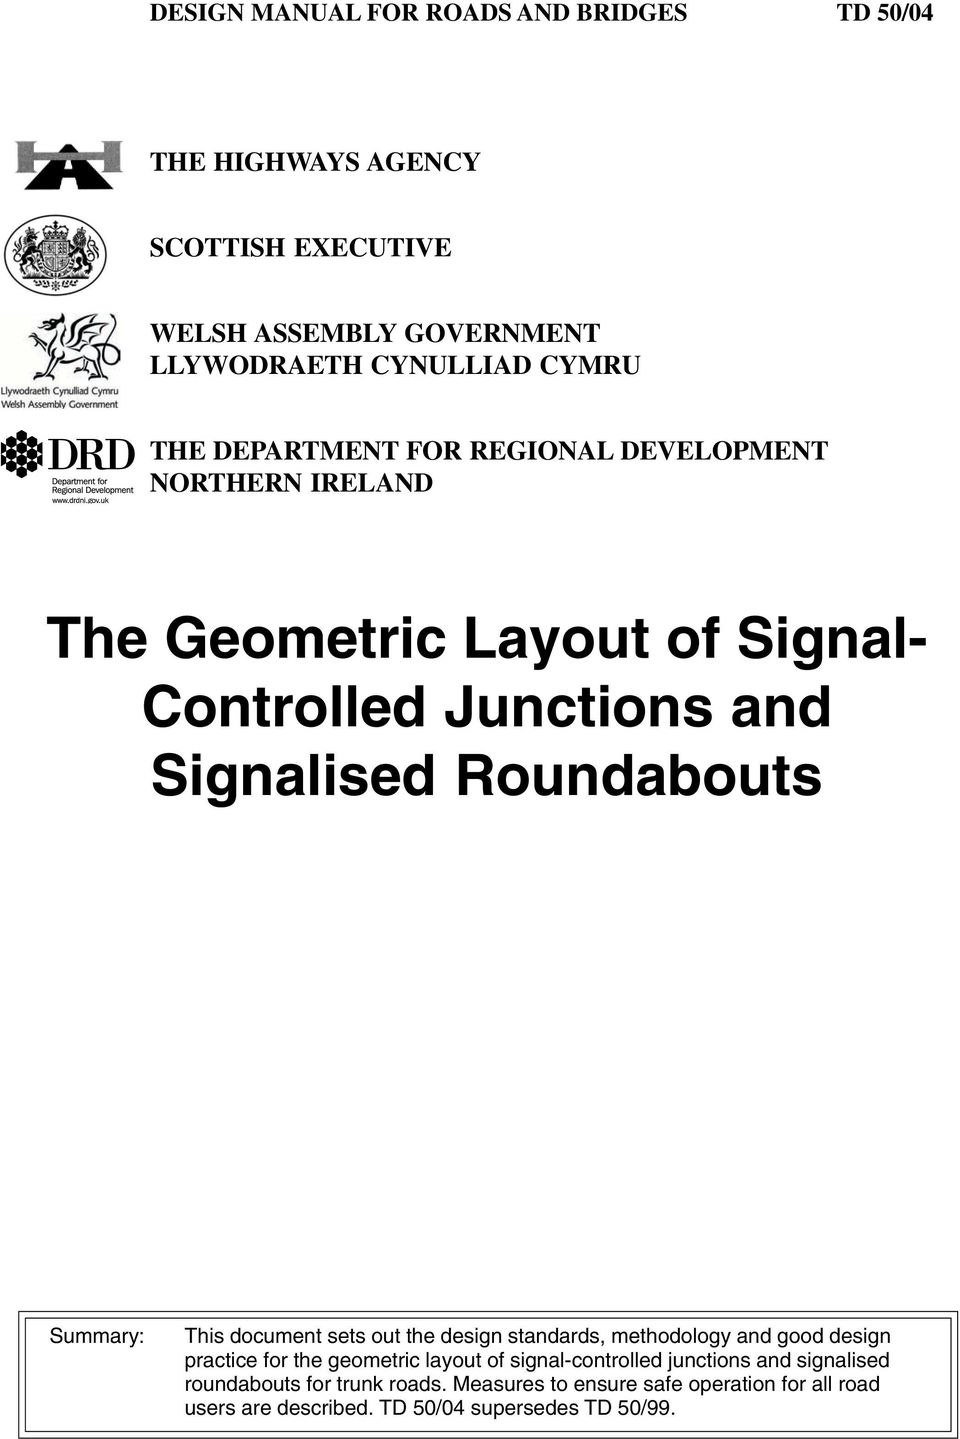 Summary: This document sets out the design standards, methodology and good design practice for the geometric layout of signal-controlled